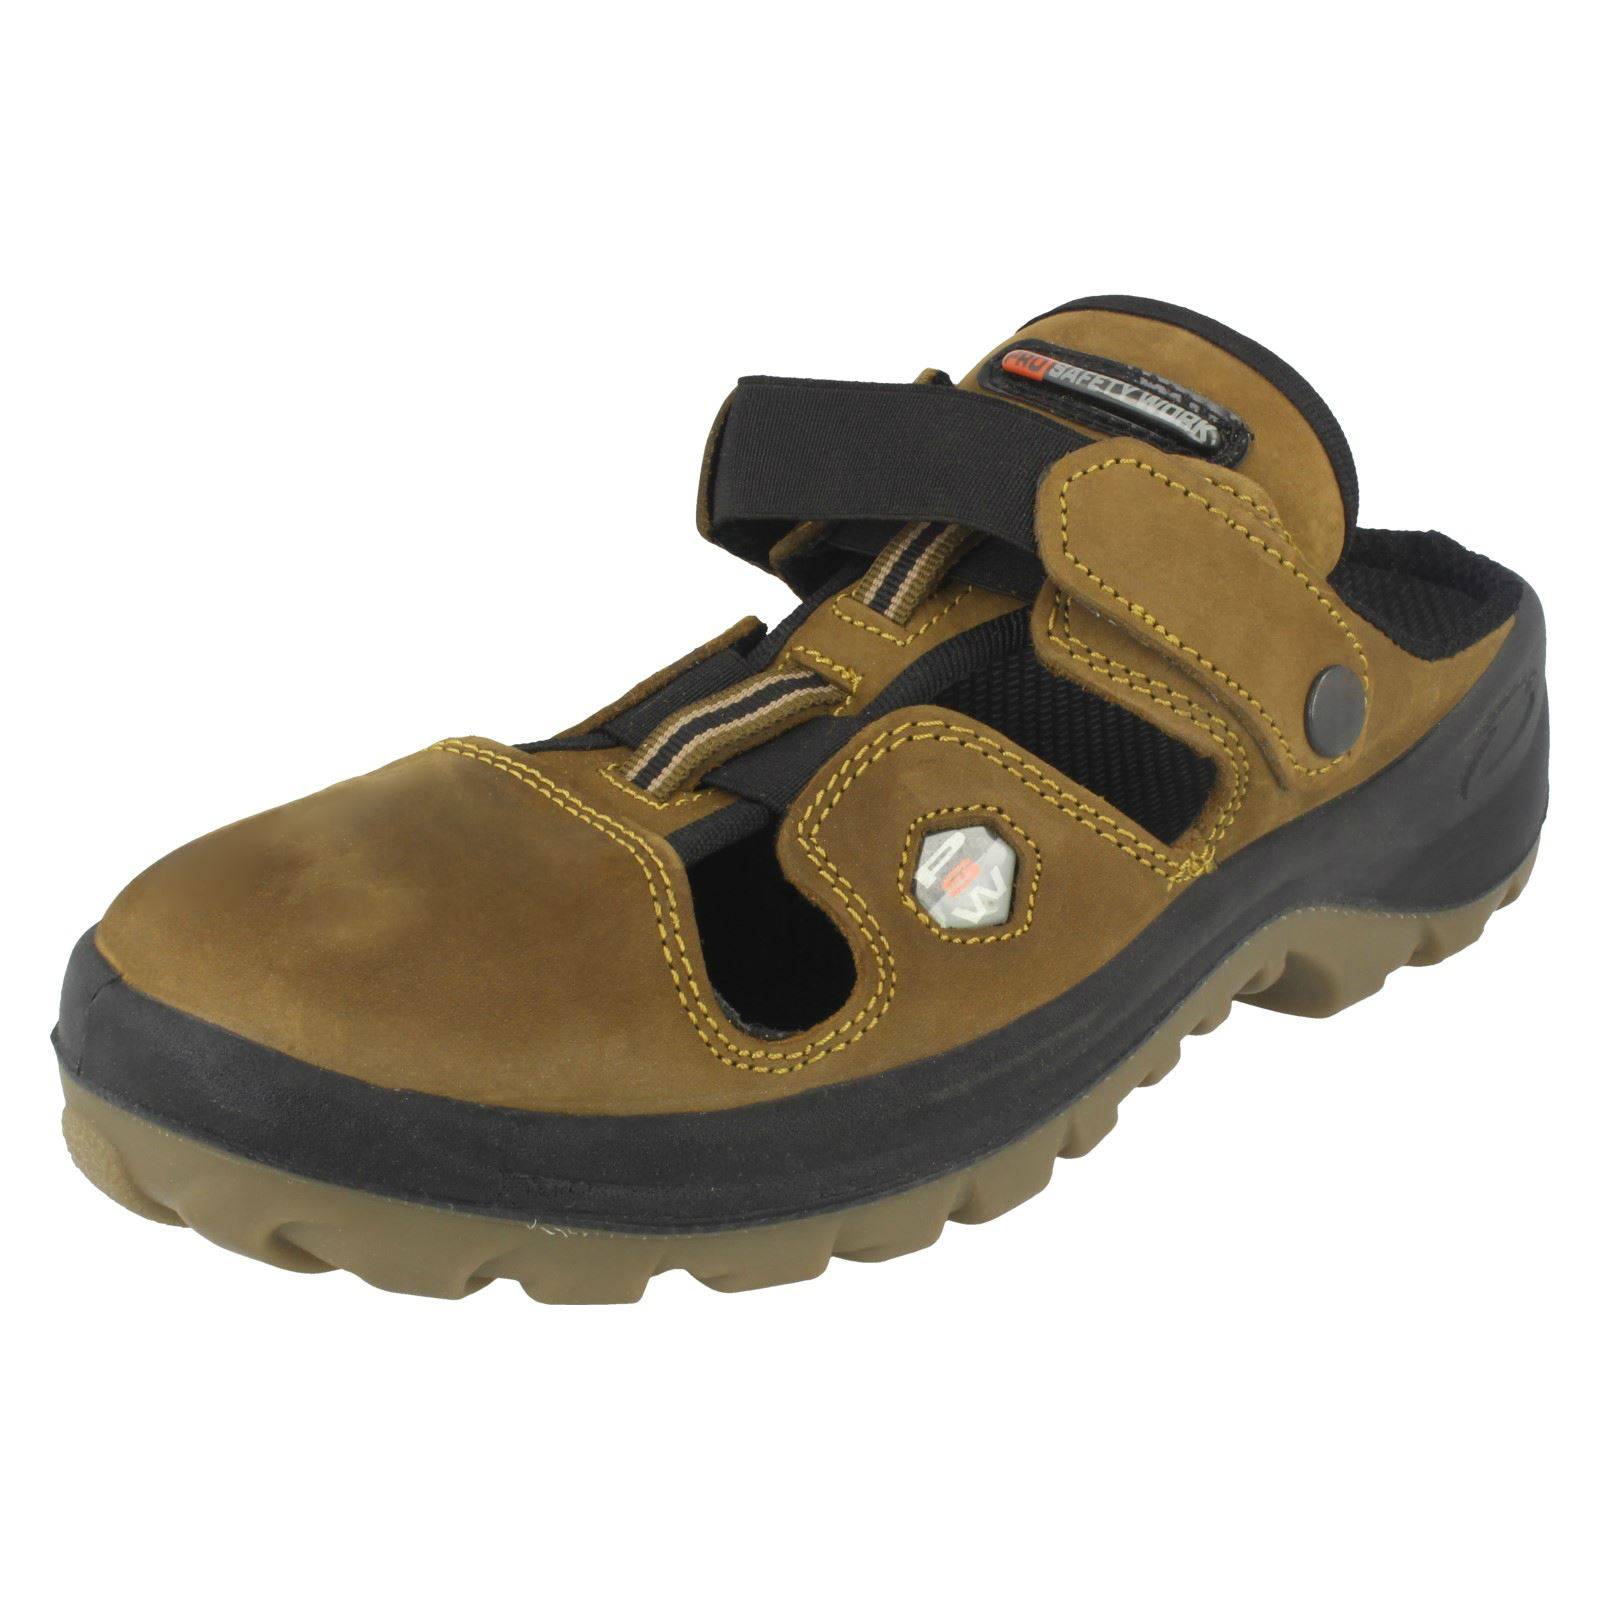 Mens Pro Safety Work Clog Safety Shoes | EBay